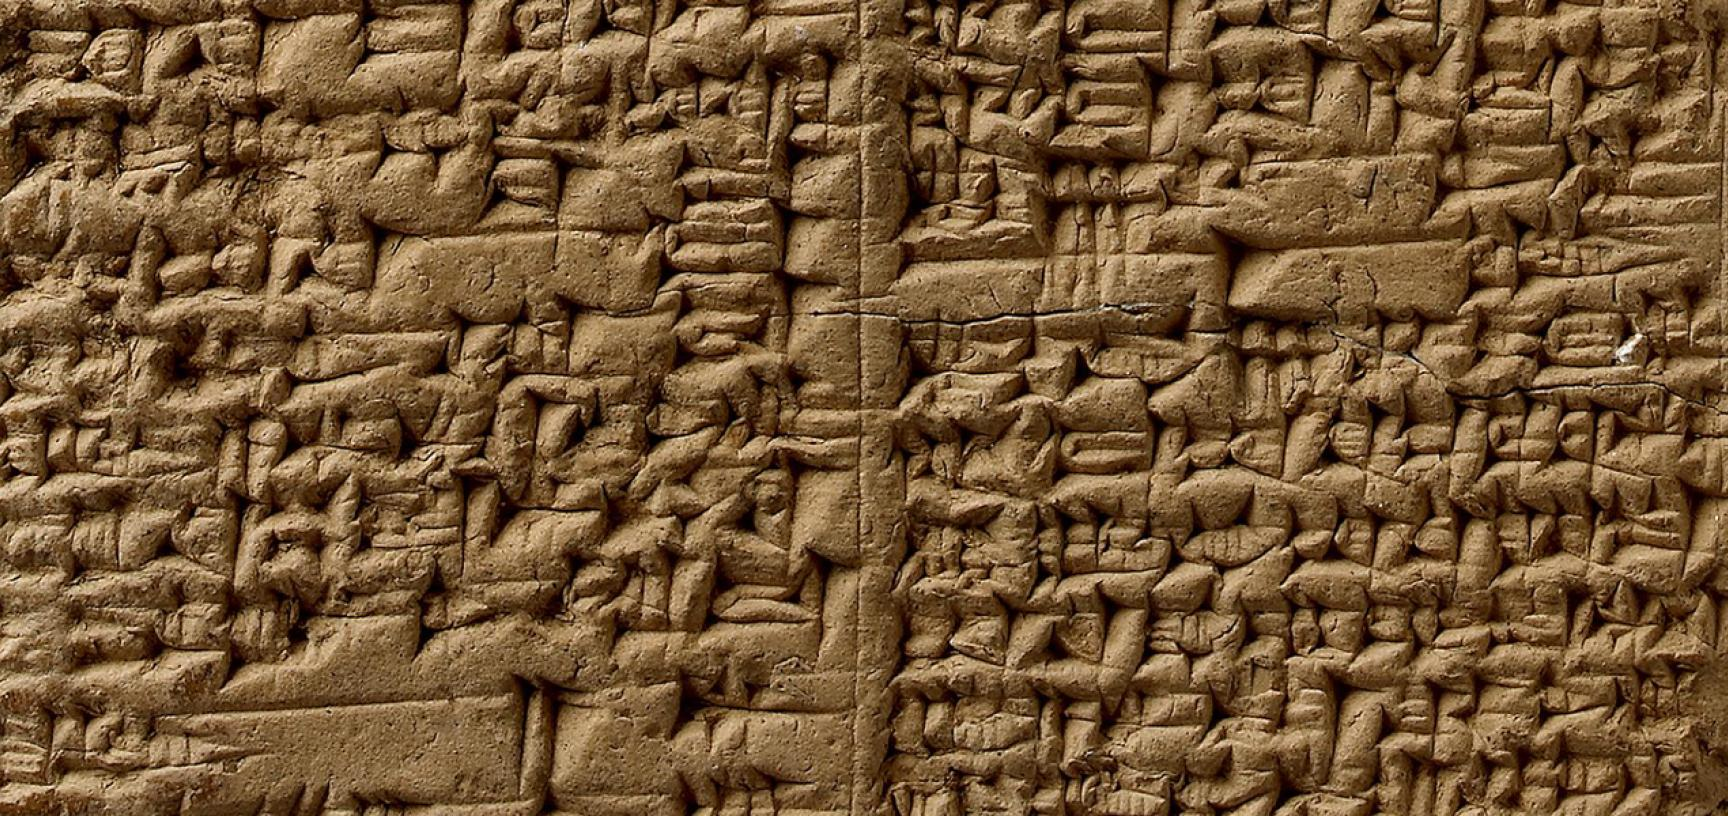 SUMERIAN KING LIST (detail) from the Ashmolean collections